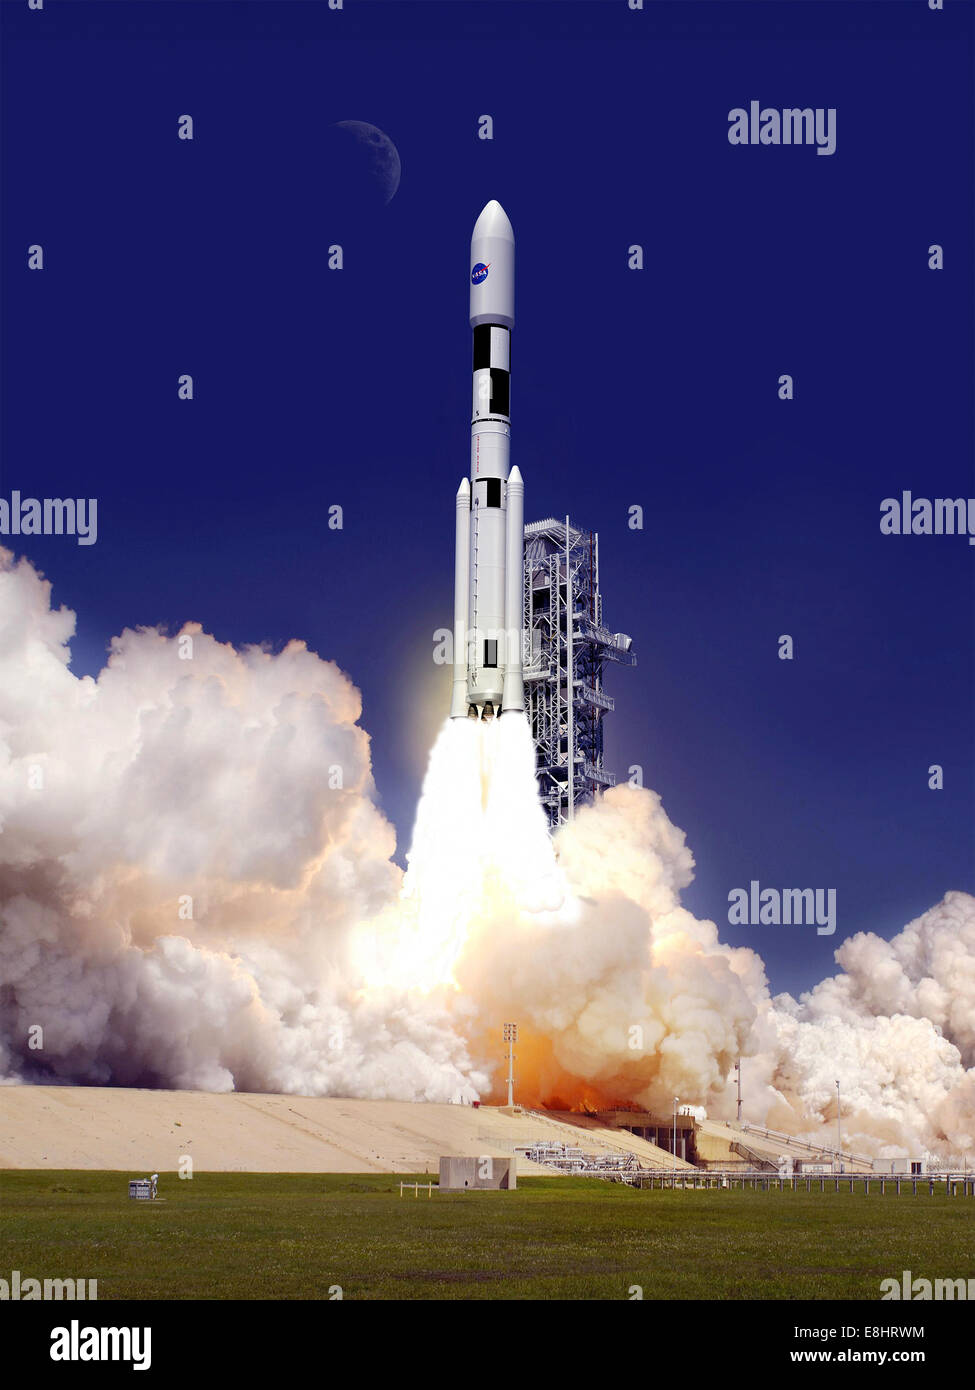 This artist concept shows the 130-metric-ton configuration of NASA's Space Launch System (SLS) during launch. - Stock Image